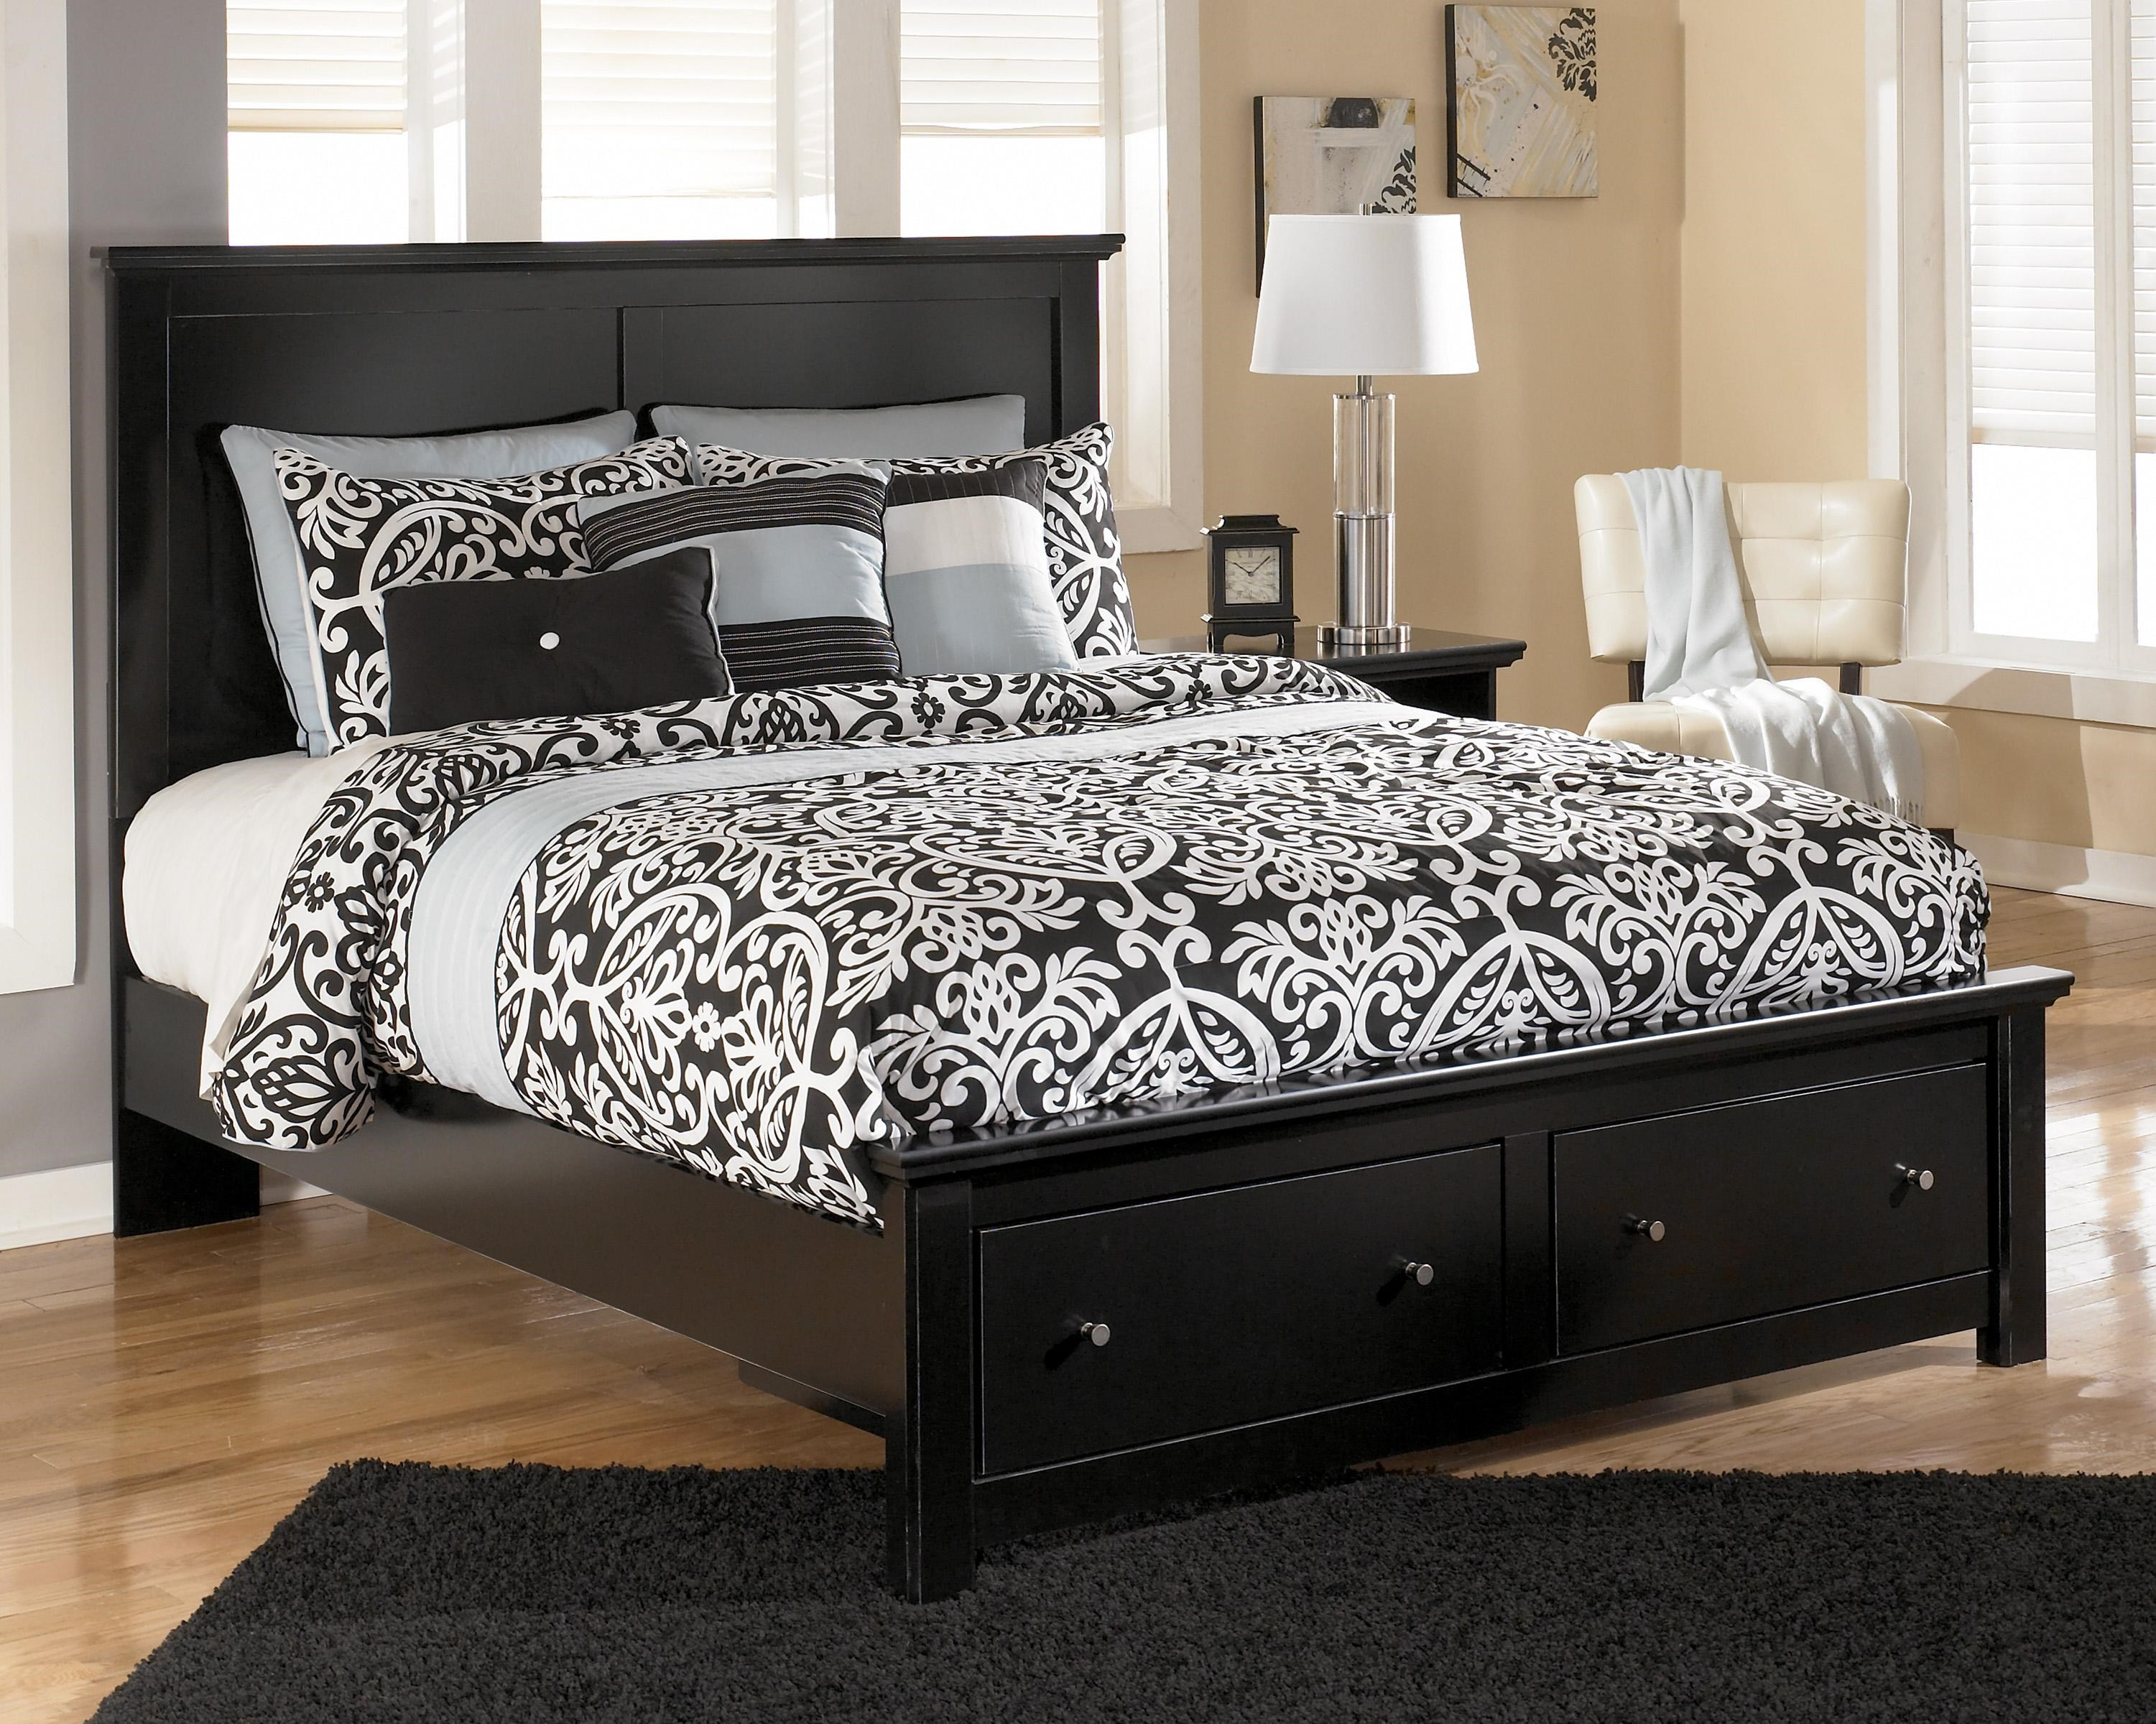 Signature Design By Ashley Maribel Queen Storage Bed With 2 Footboard  Drawers